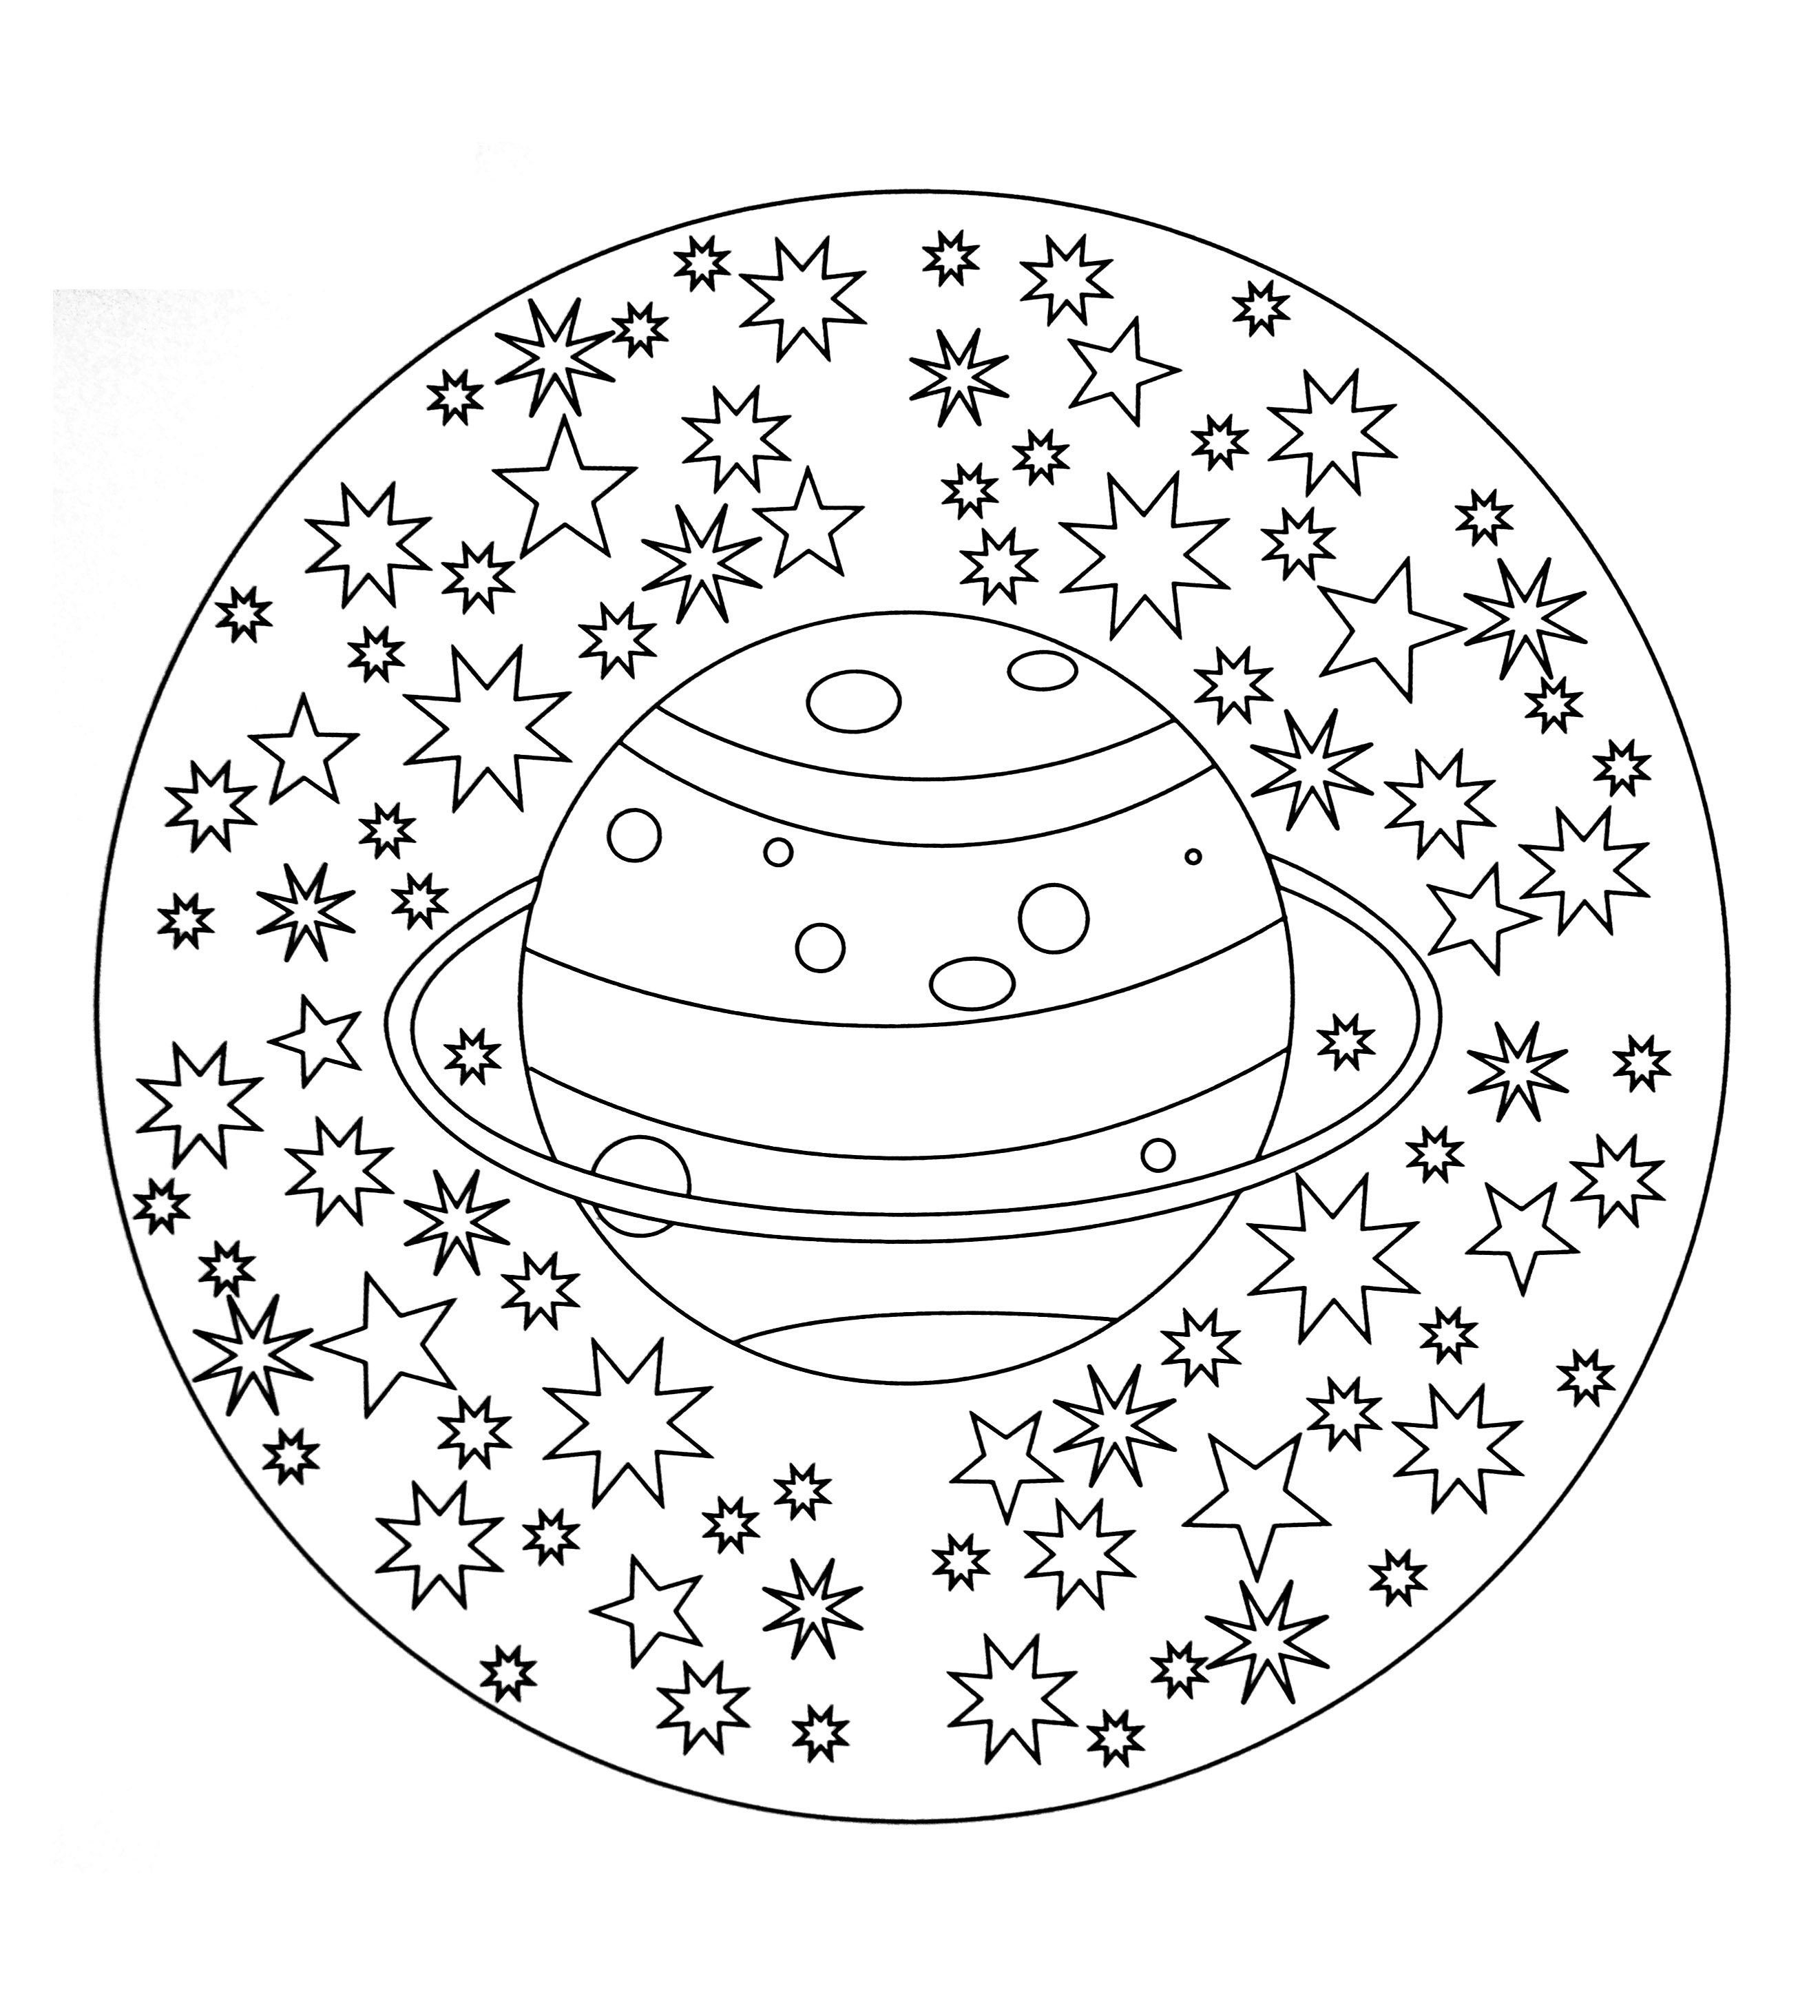 free mandala coloring pages for kids free mandala coloring pages for kids printable coloring kids free pages for mandala coloring